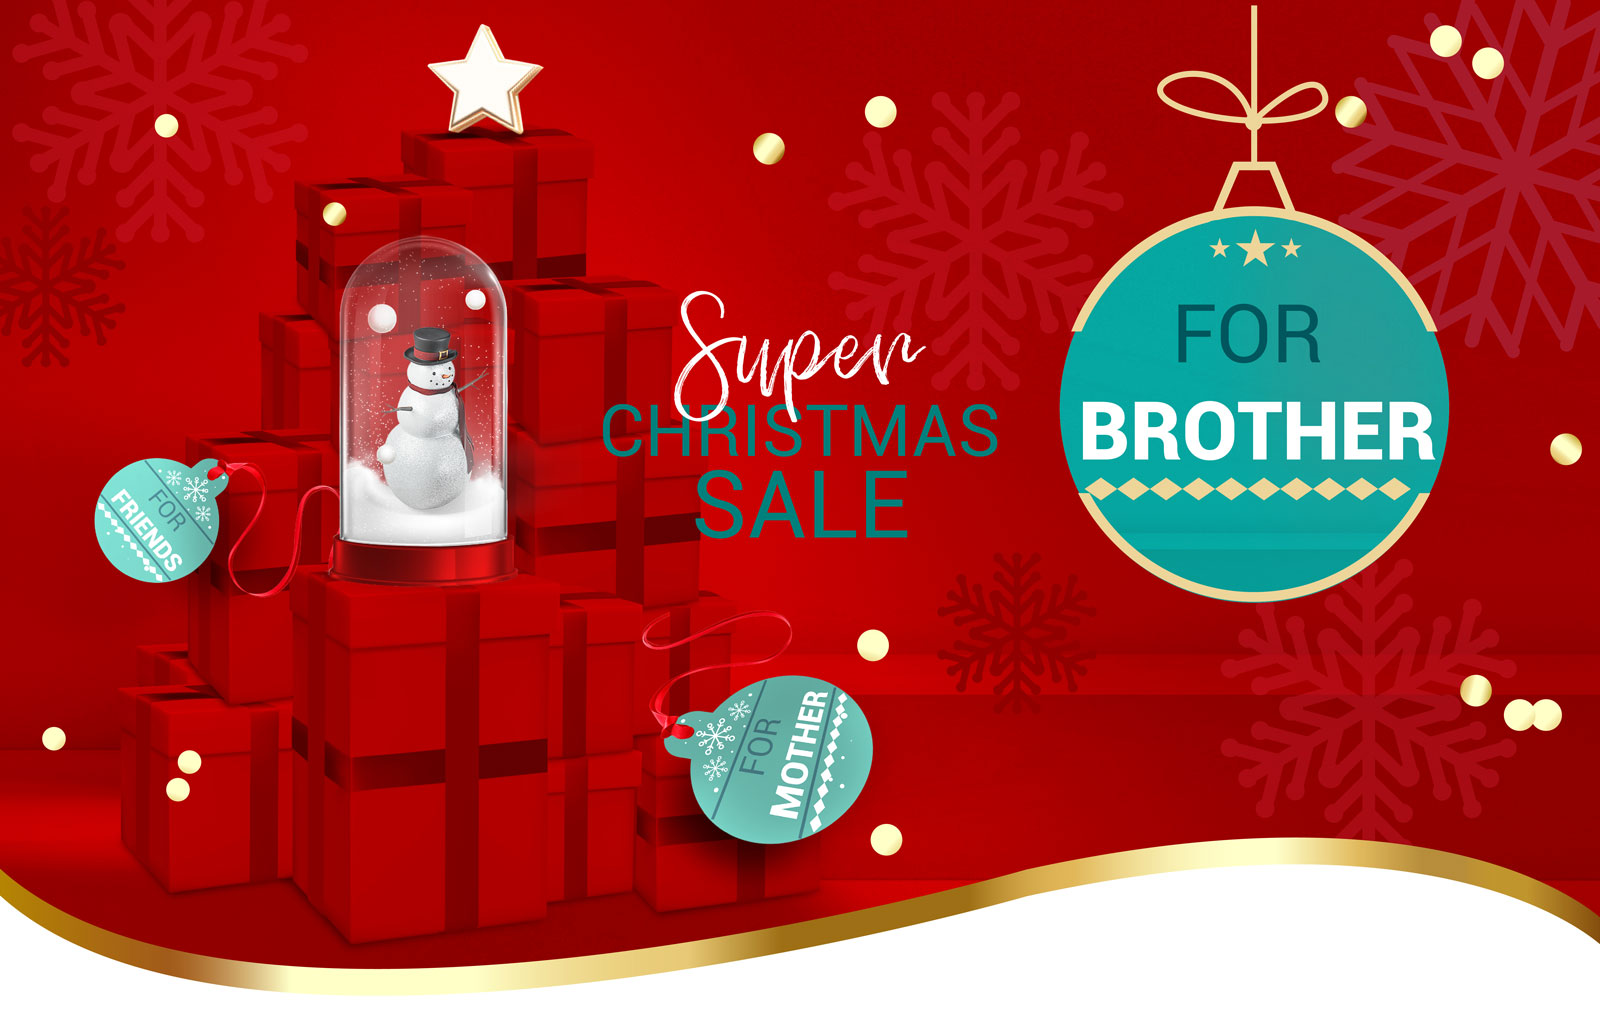 Super Christmas Sale Gift Guide For Brother